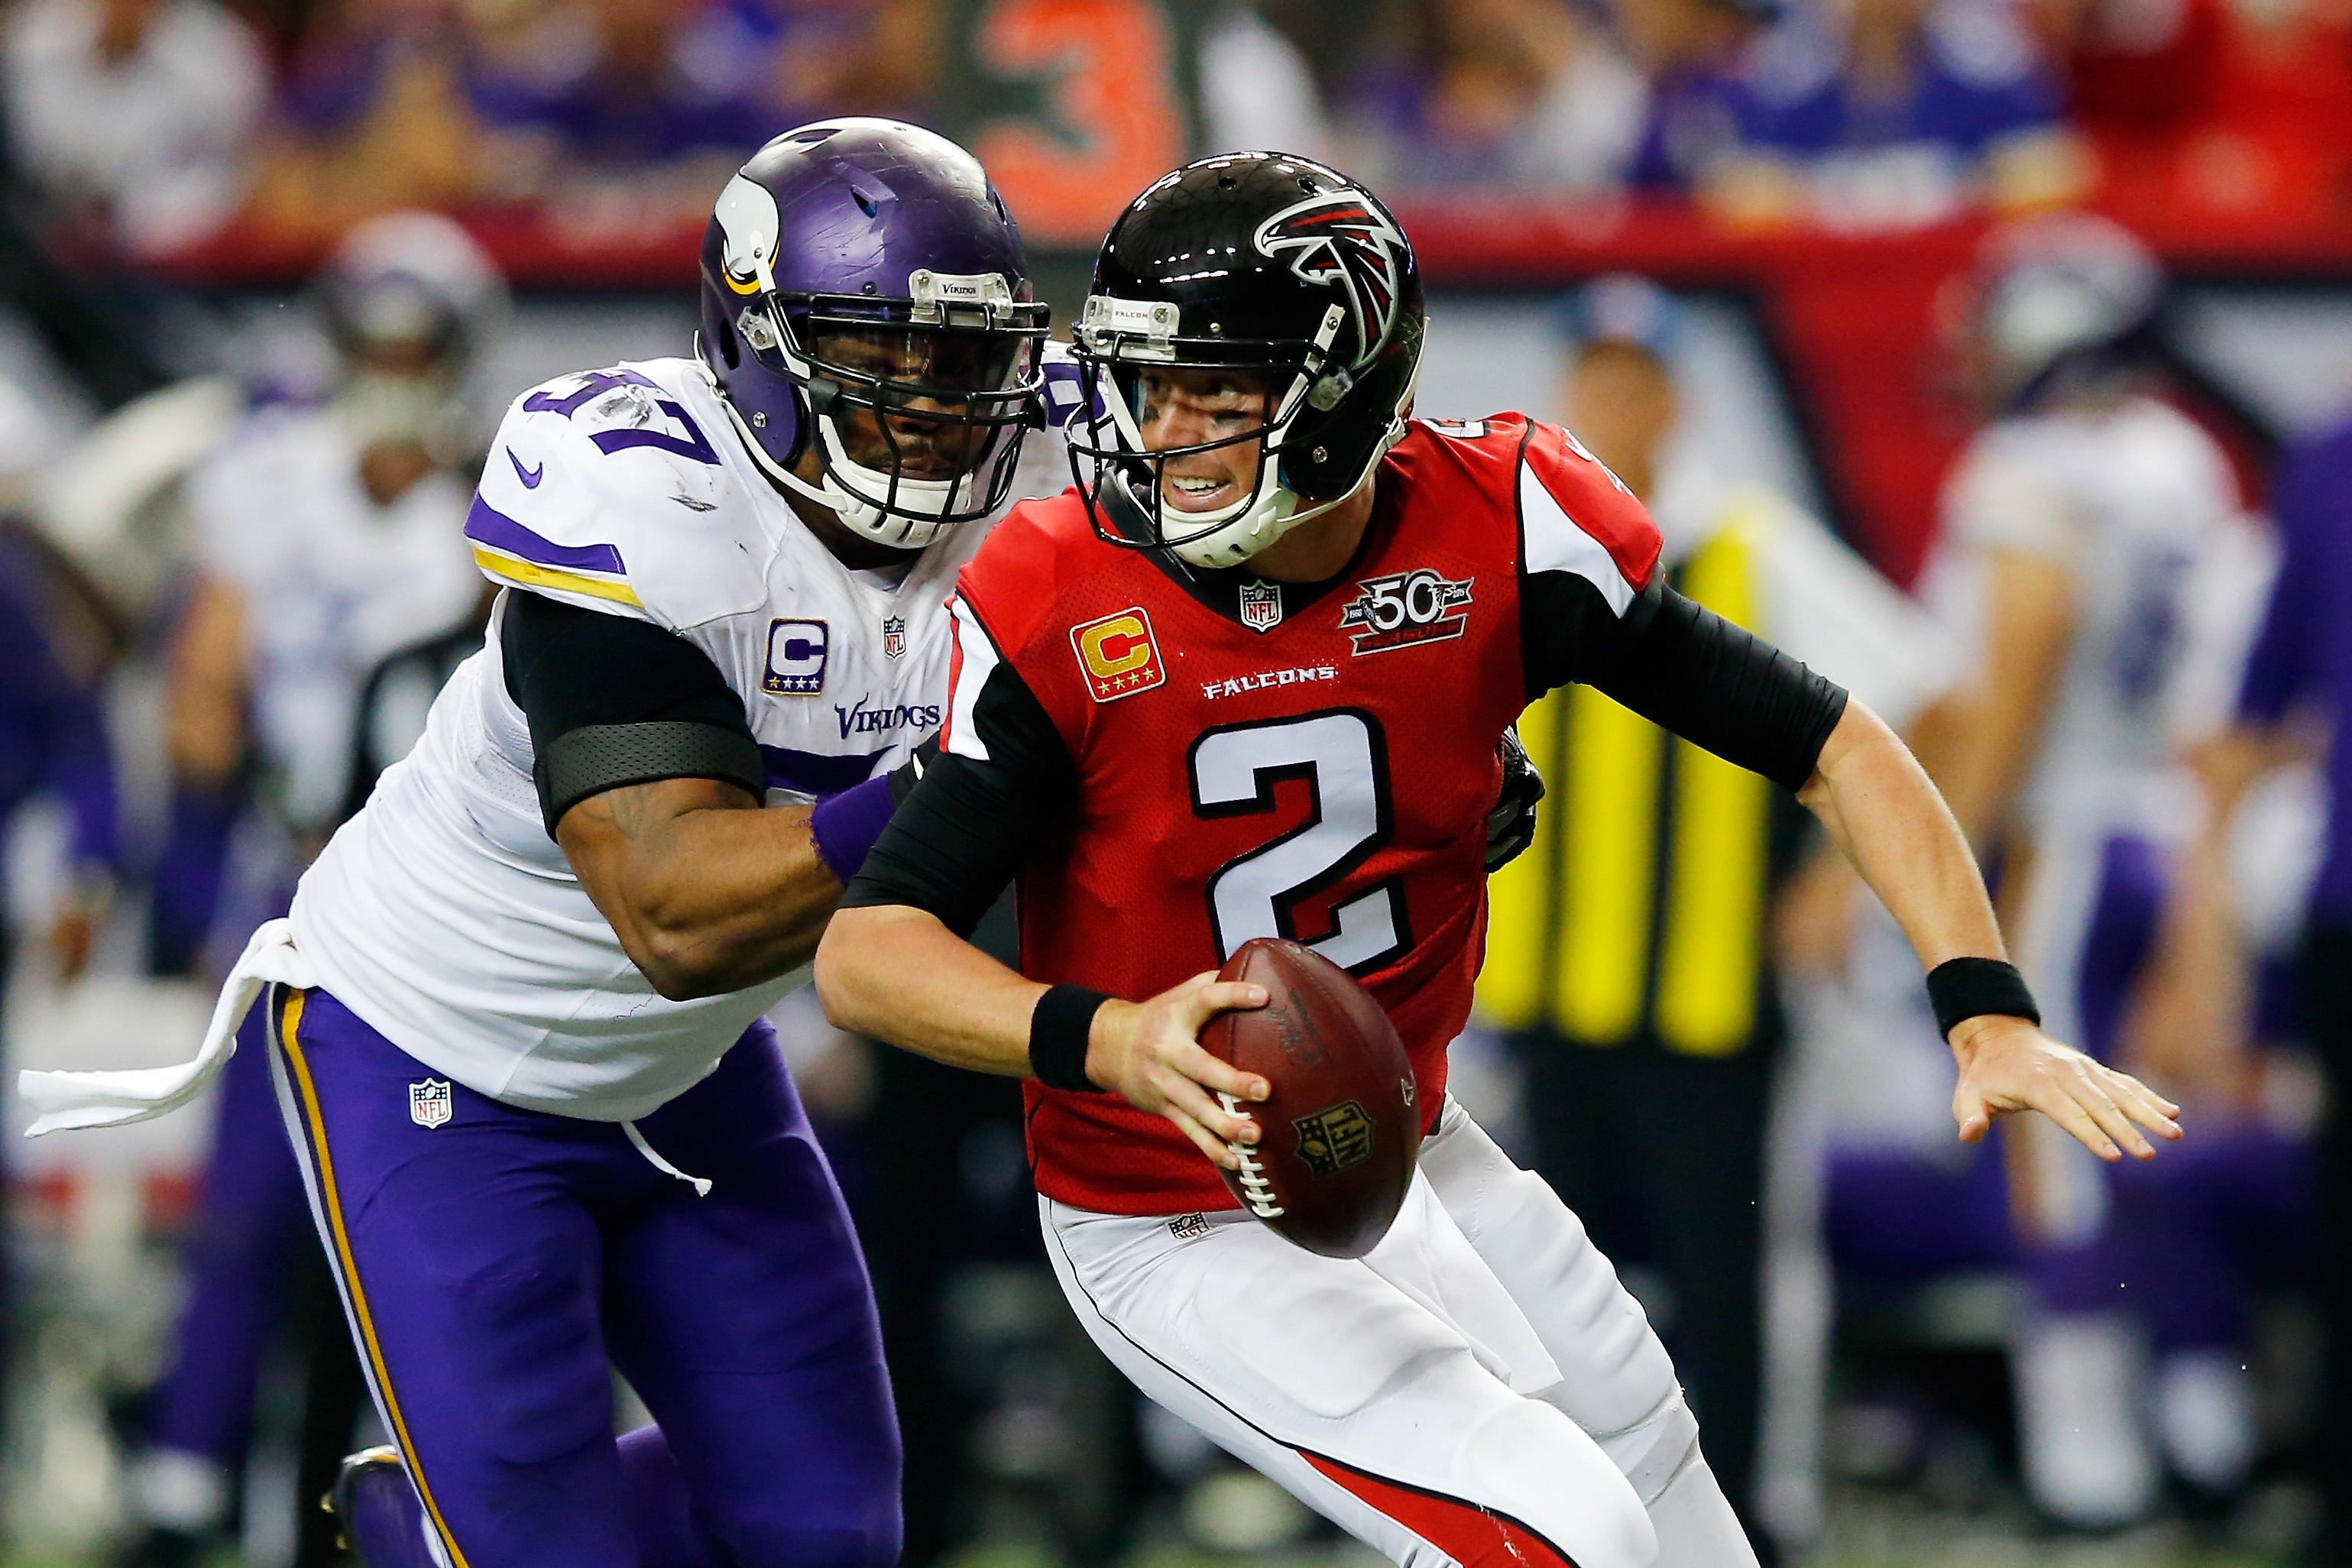 Minnesota Vikings DE Everson Griffen reaches 50 sacks for his career